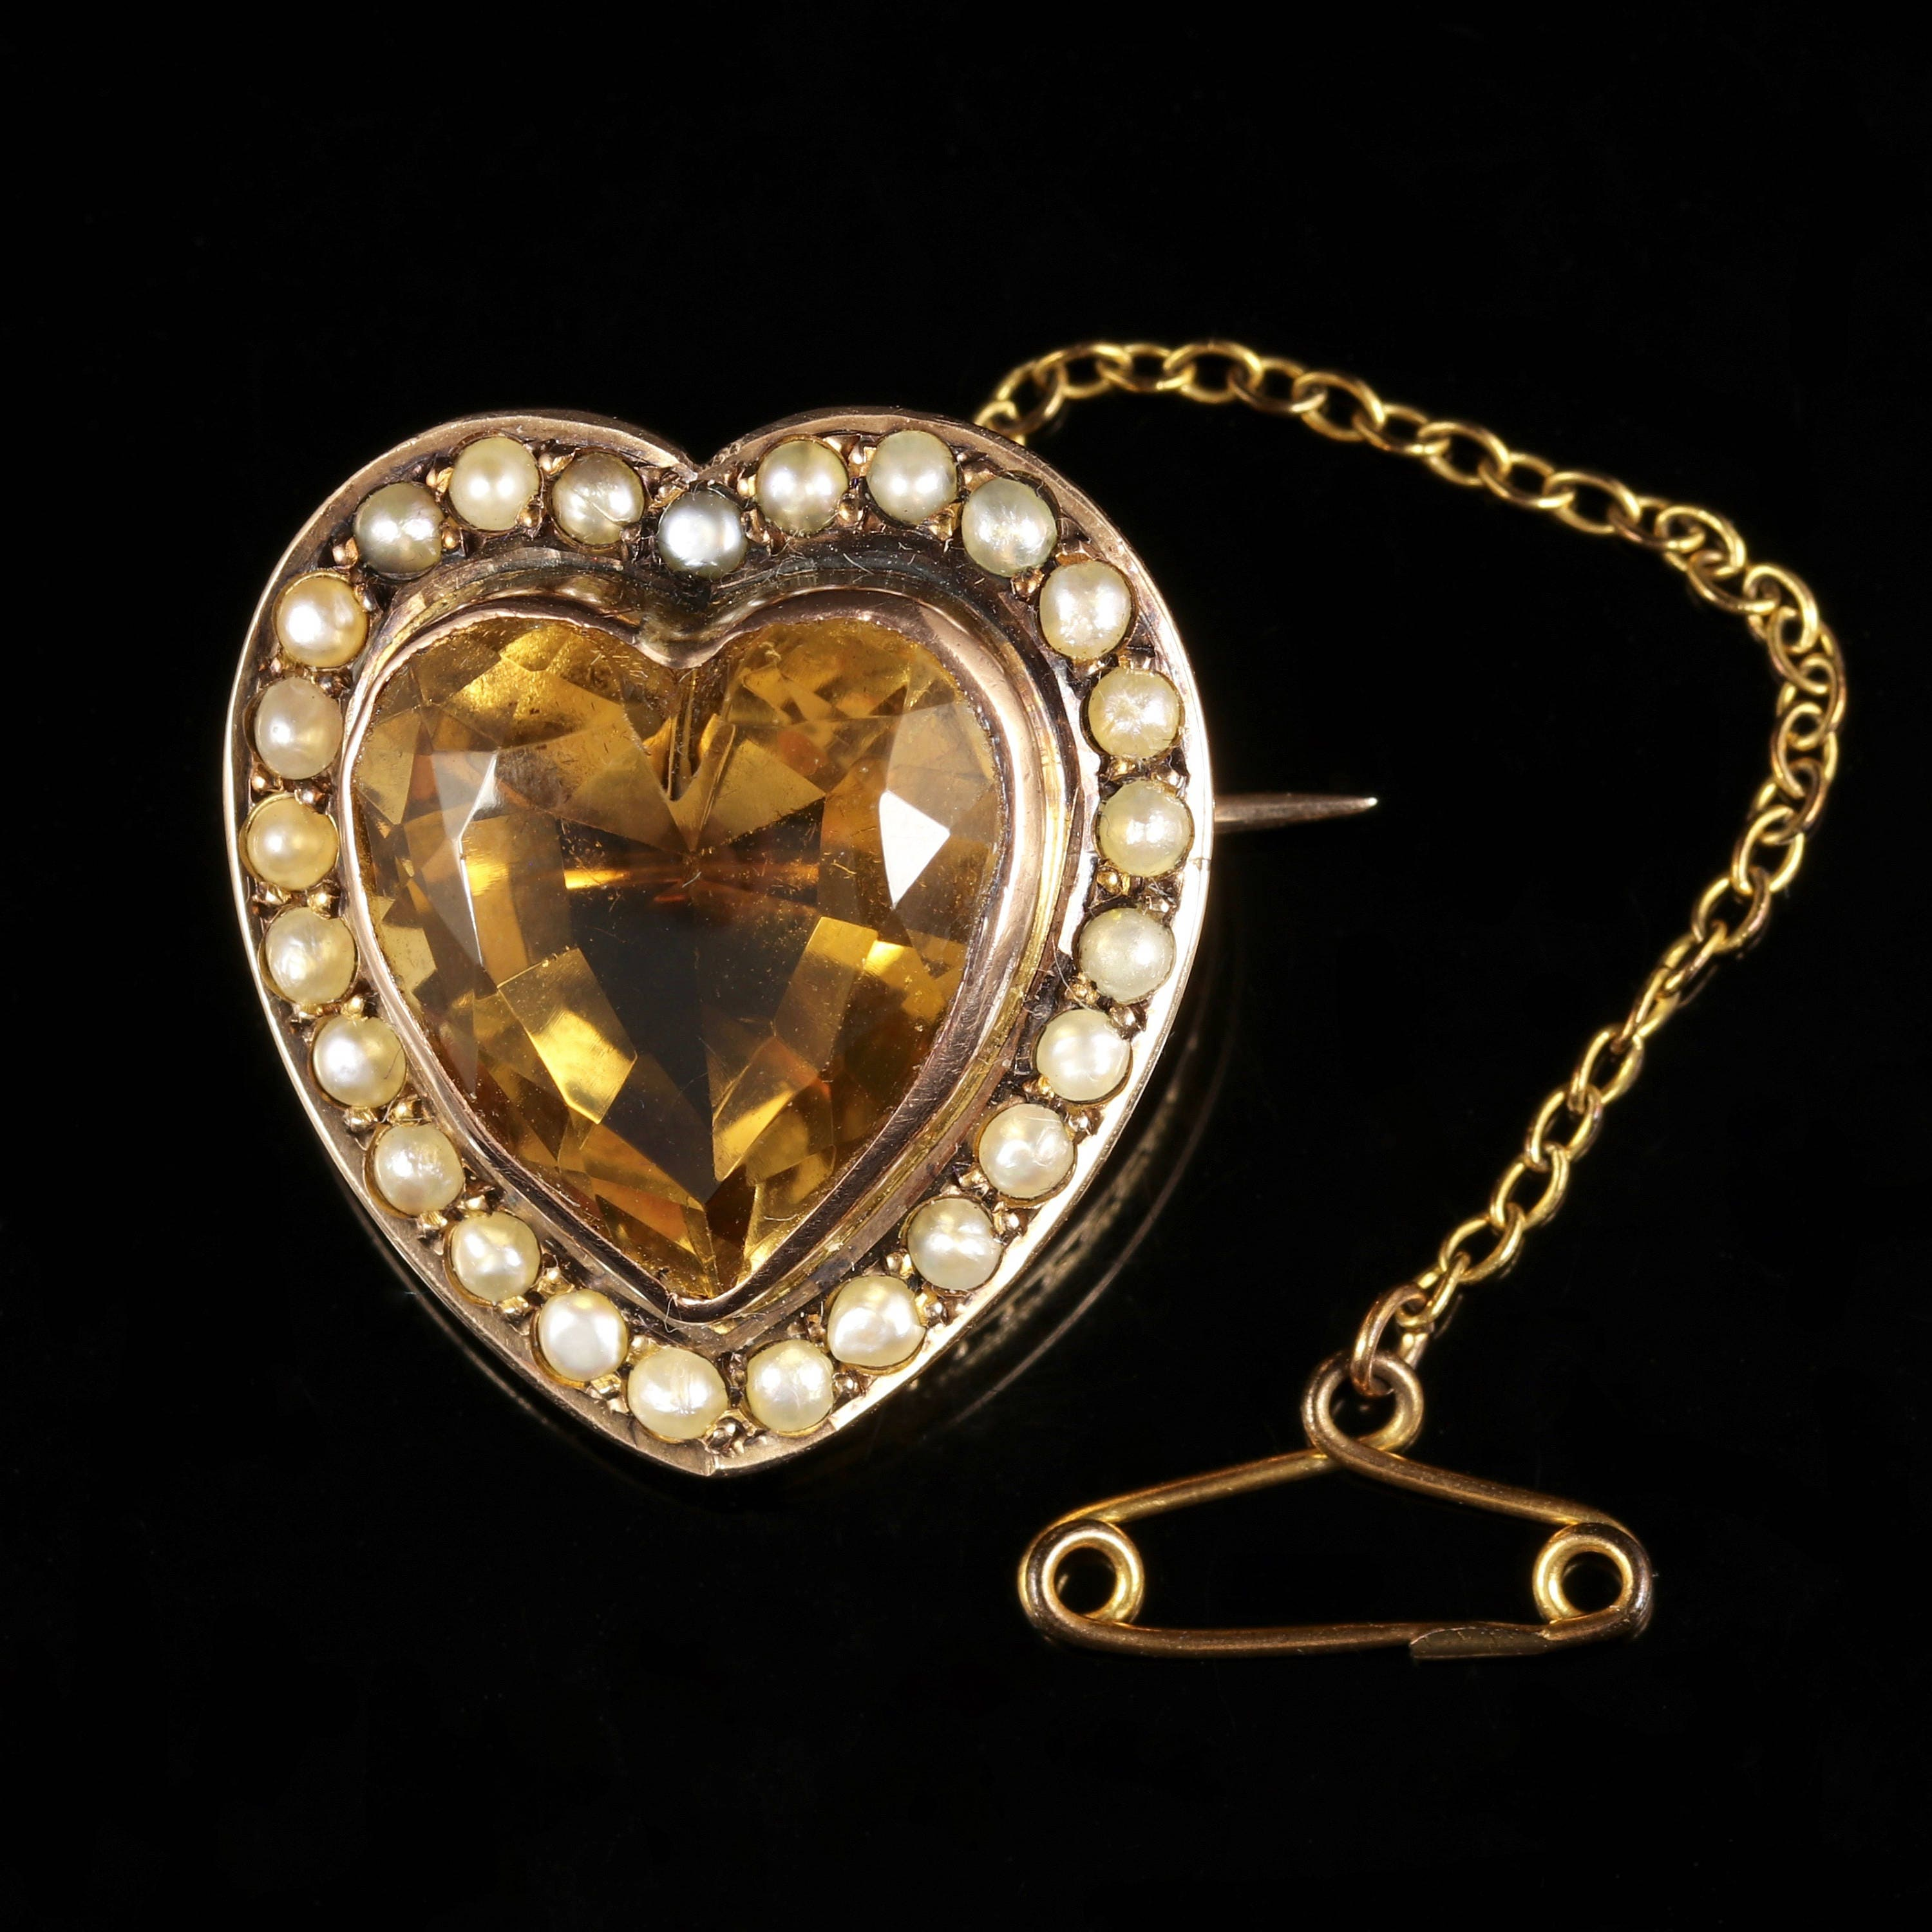 Antique Victorian Citrine Pearl Heart Brooch Gold Circa 1880